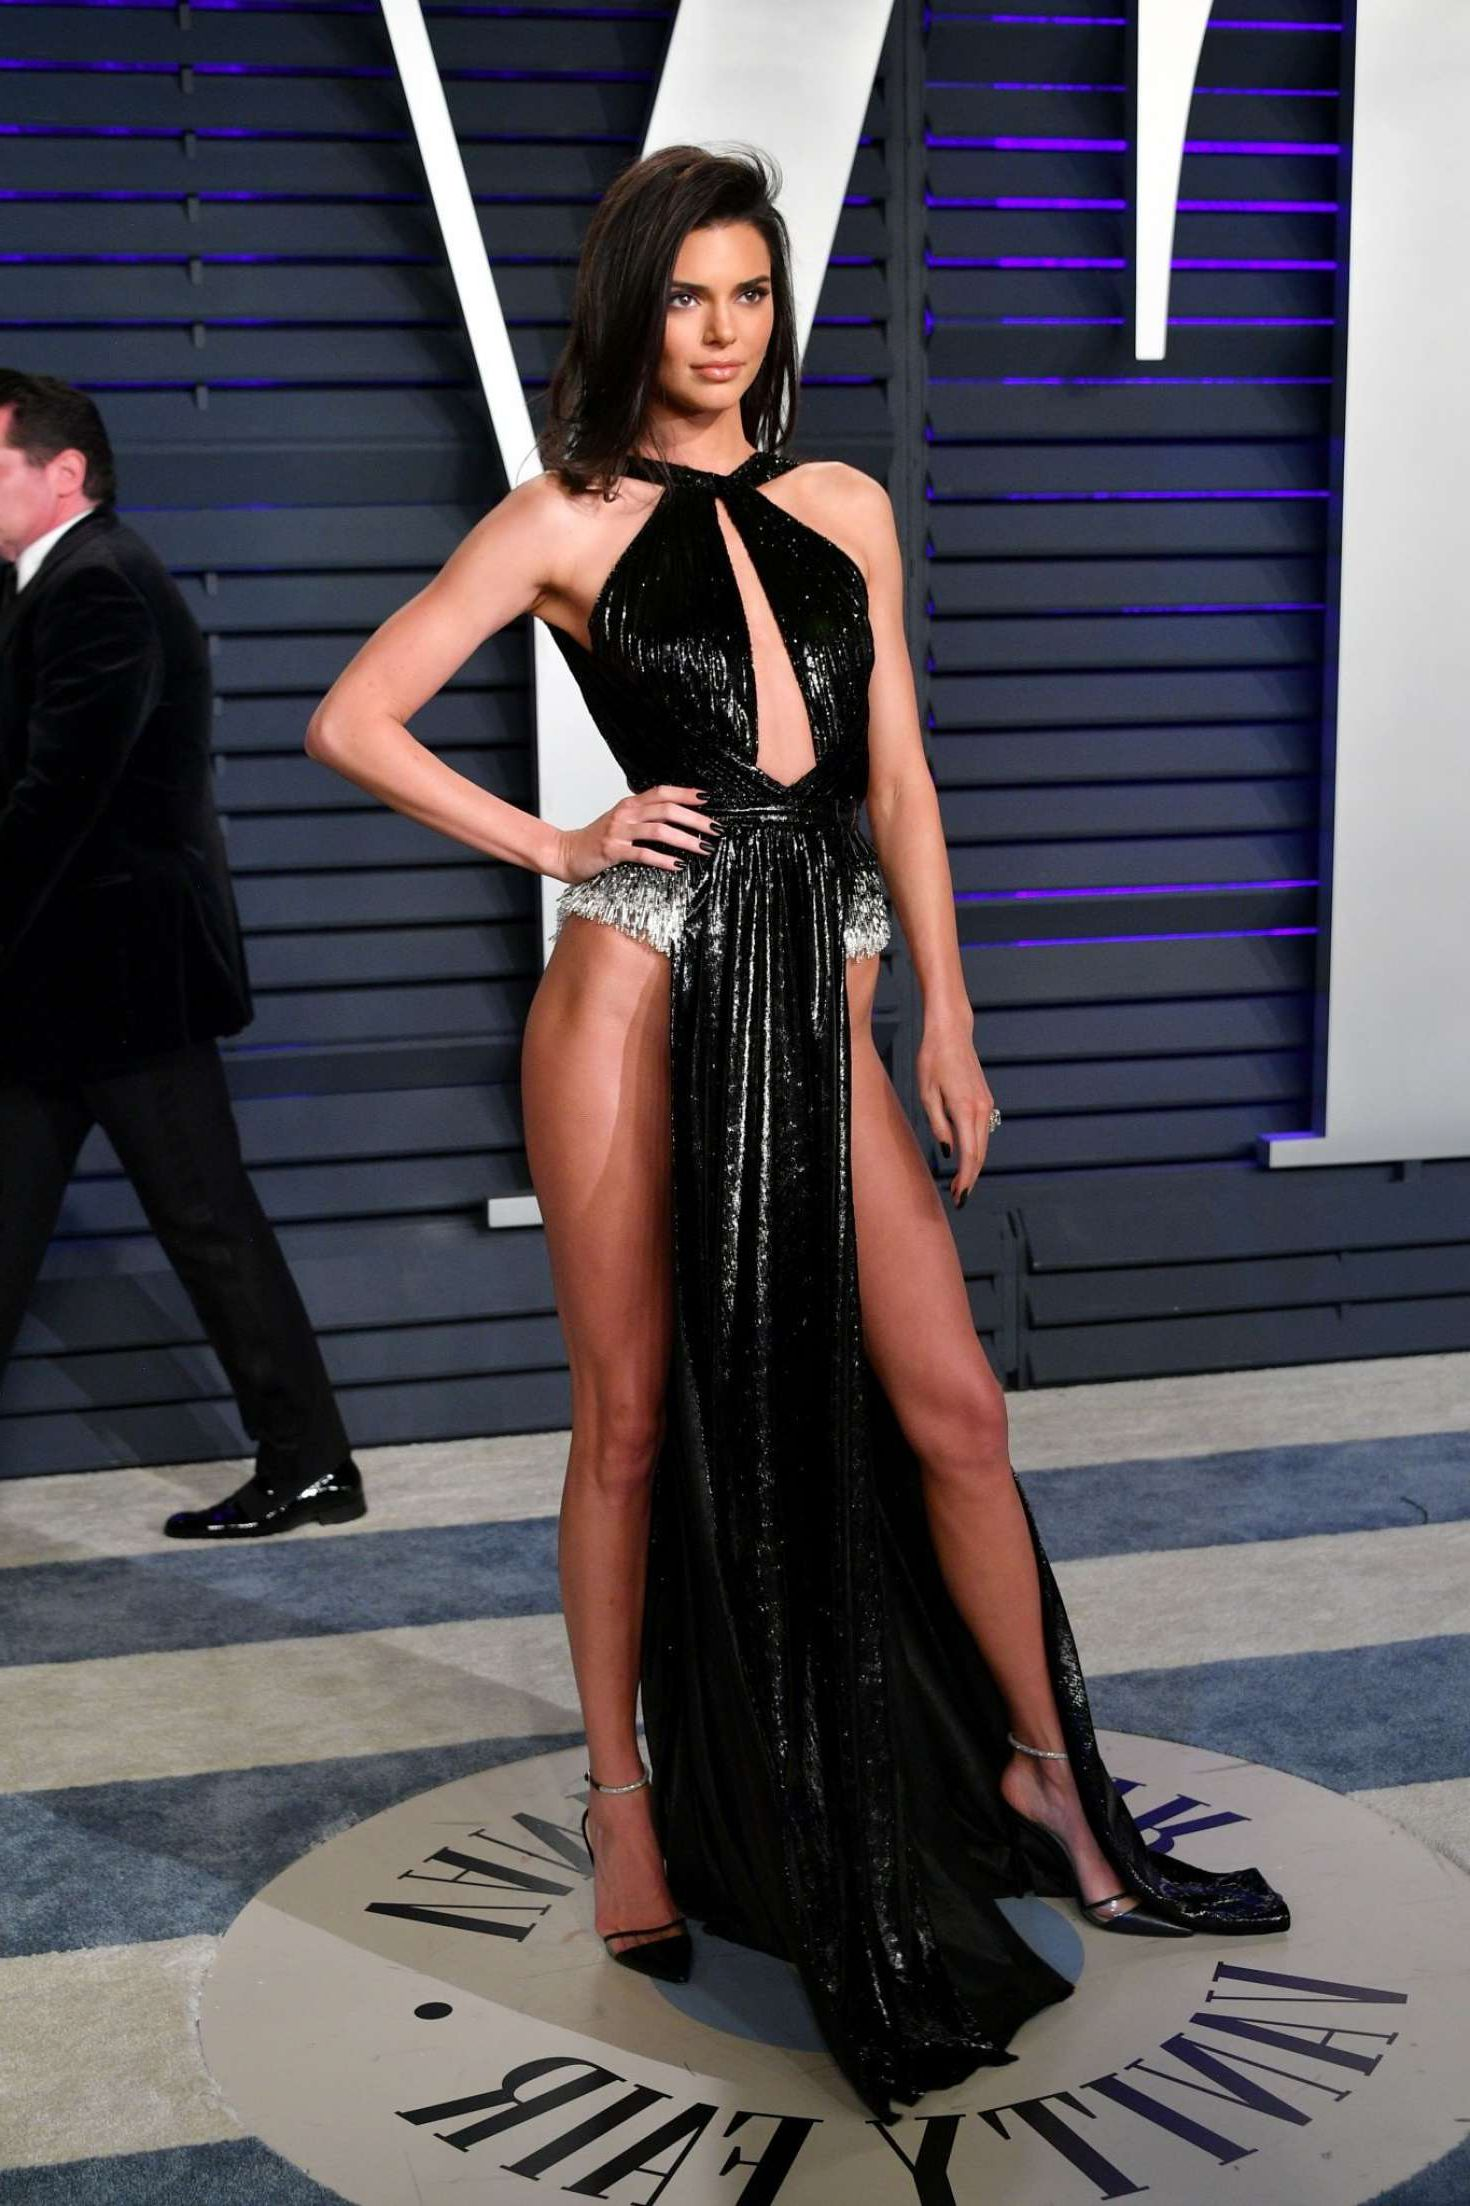 Kendall Jenner In A Super Open Dress At The Vanity Fair Oscar Party In Beverly Hills February 2019